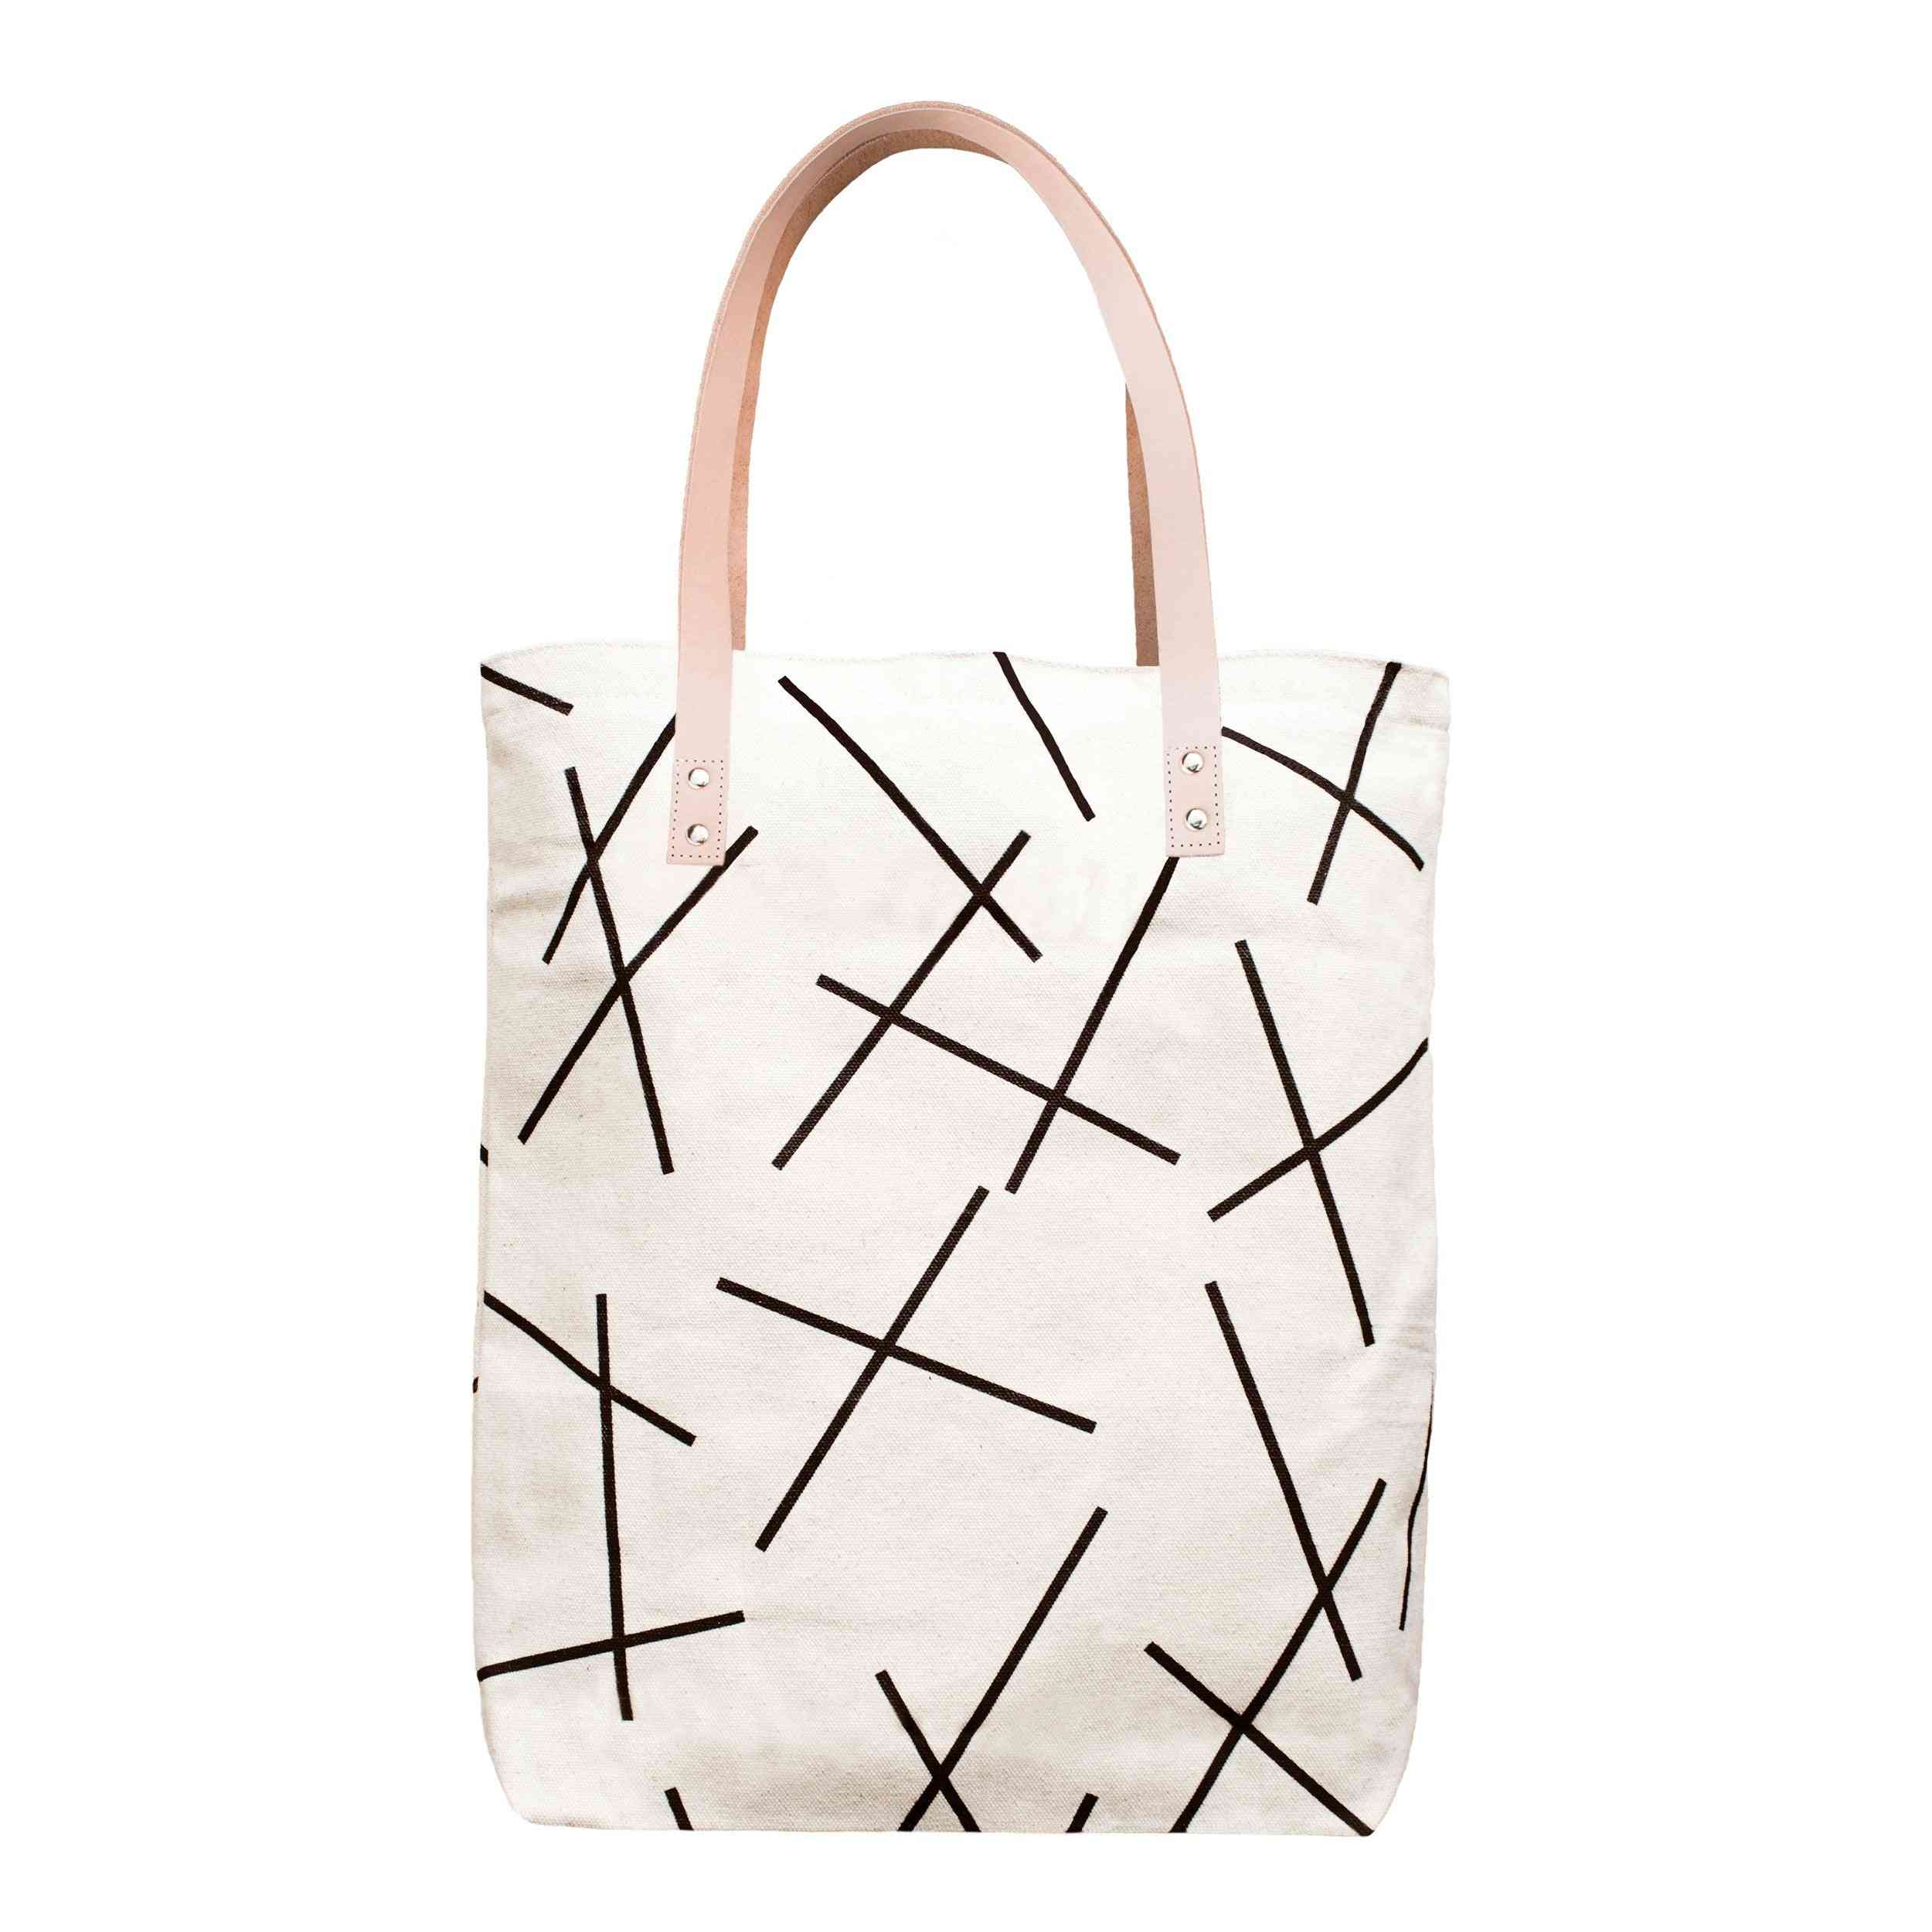 Cotton Canvas Tote Bag With Leather Straps